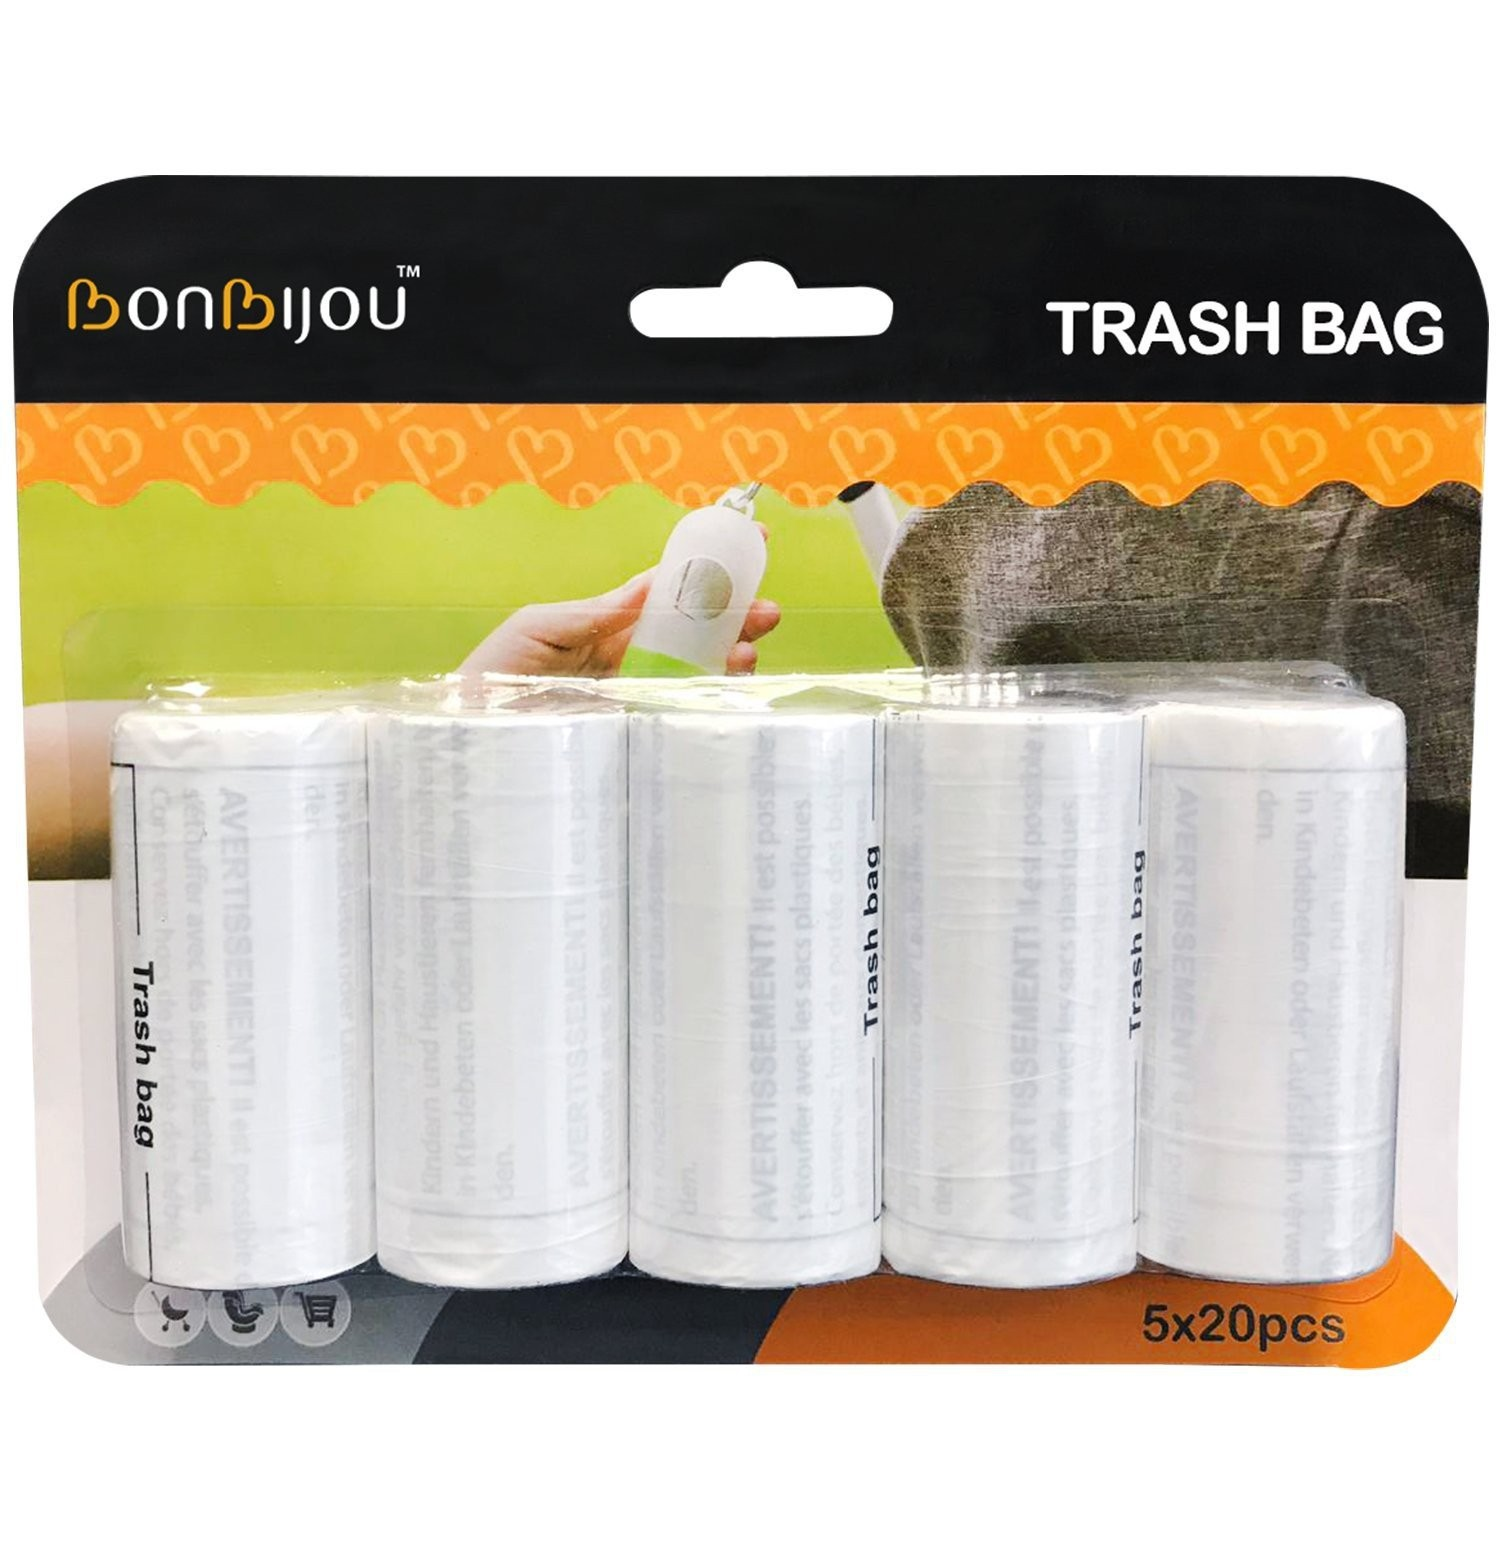 Bonbijou Trash Bag Refills 5 X 20pcs